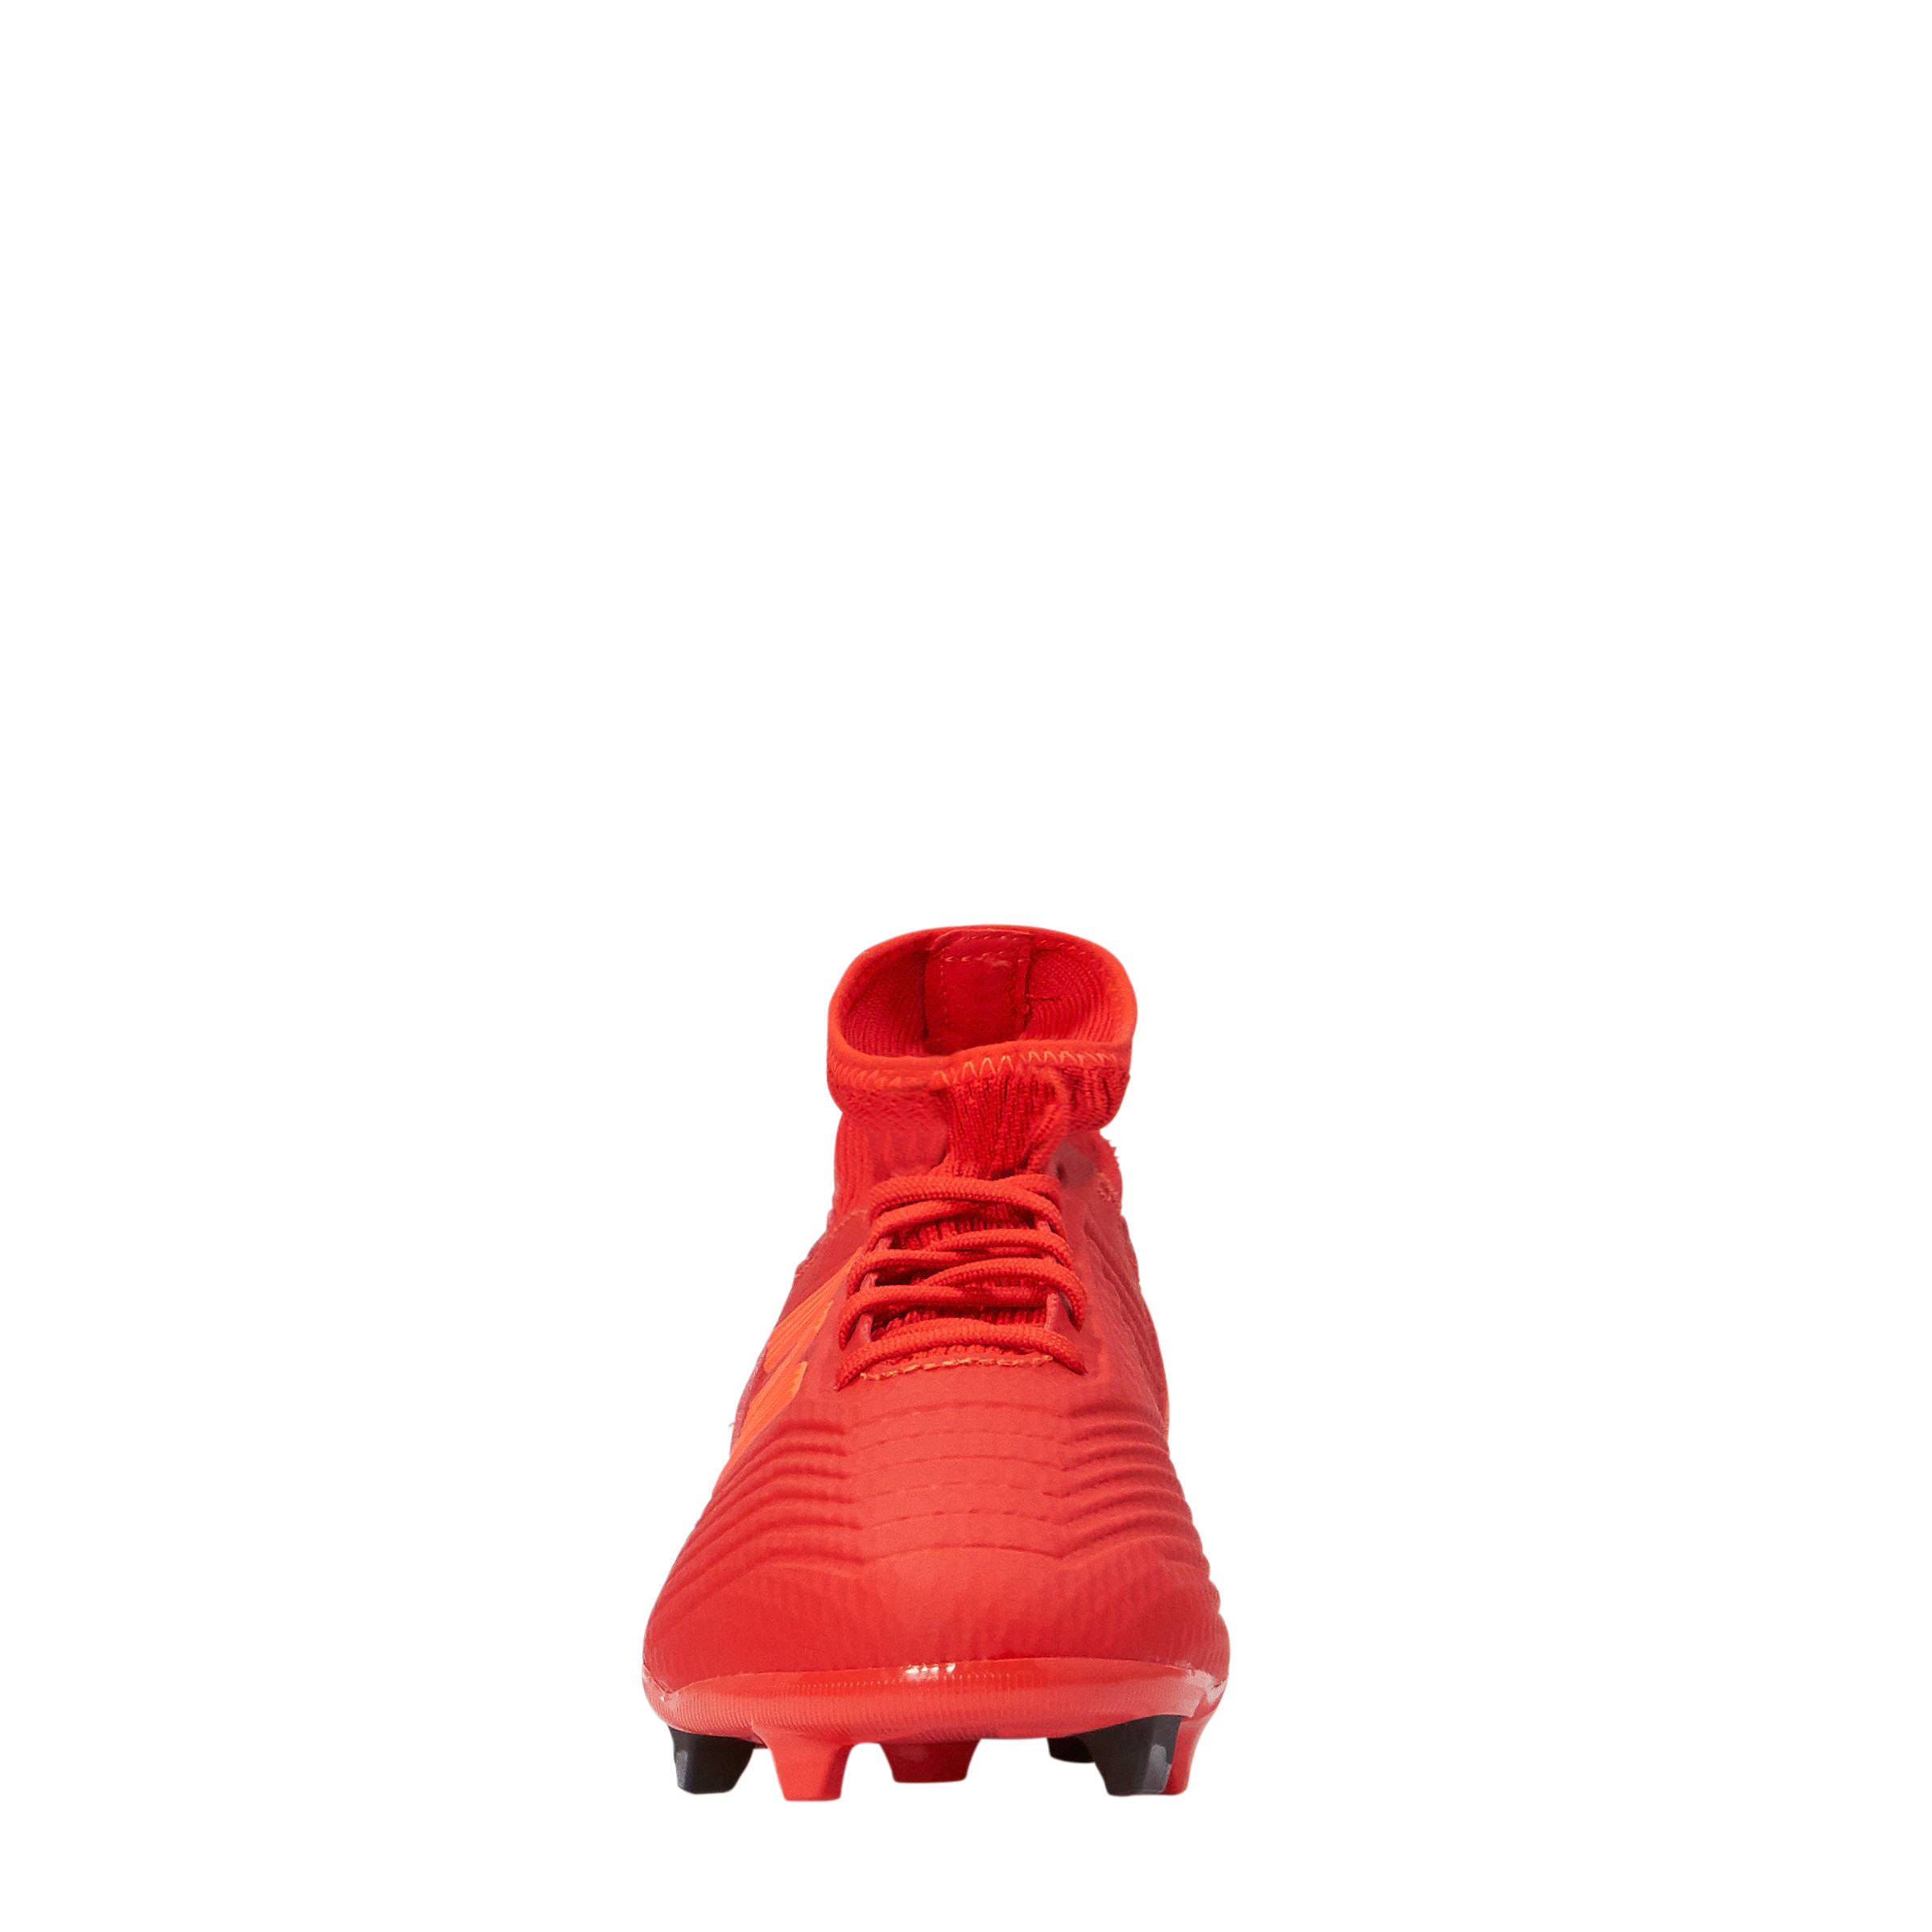 brand new 45915 be70b adidas performance Predator 19.3 FG voetbalschoenen rood  we